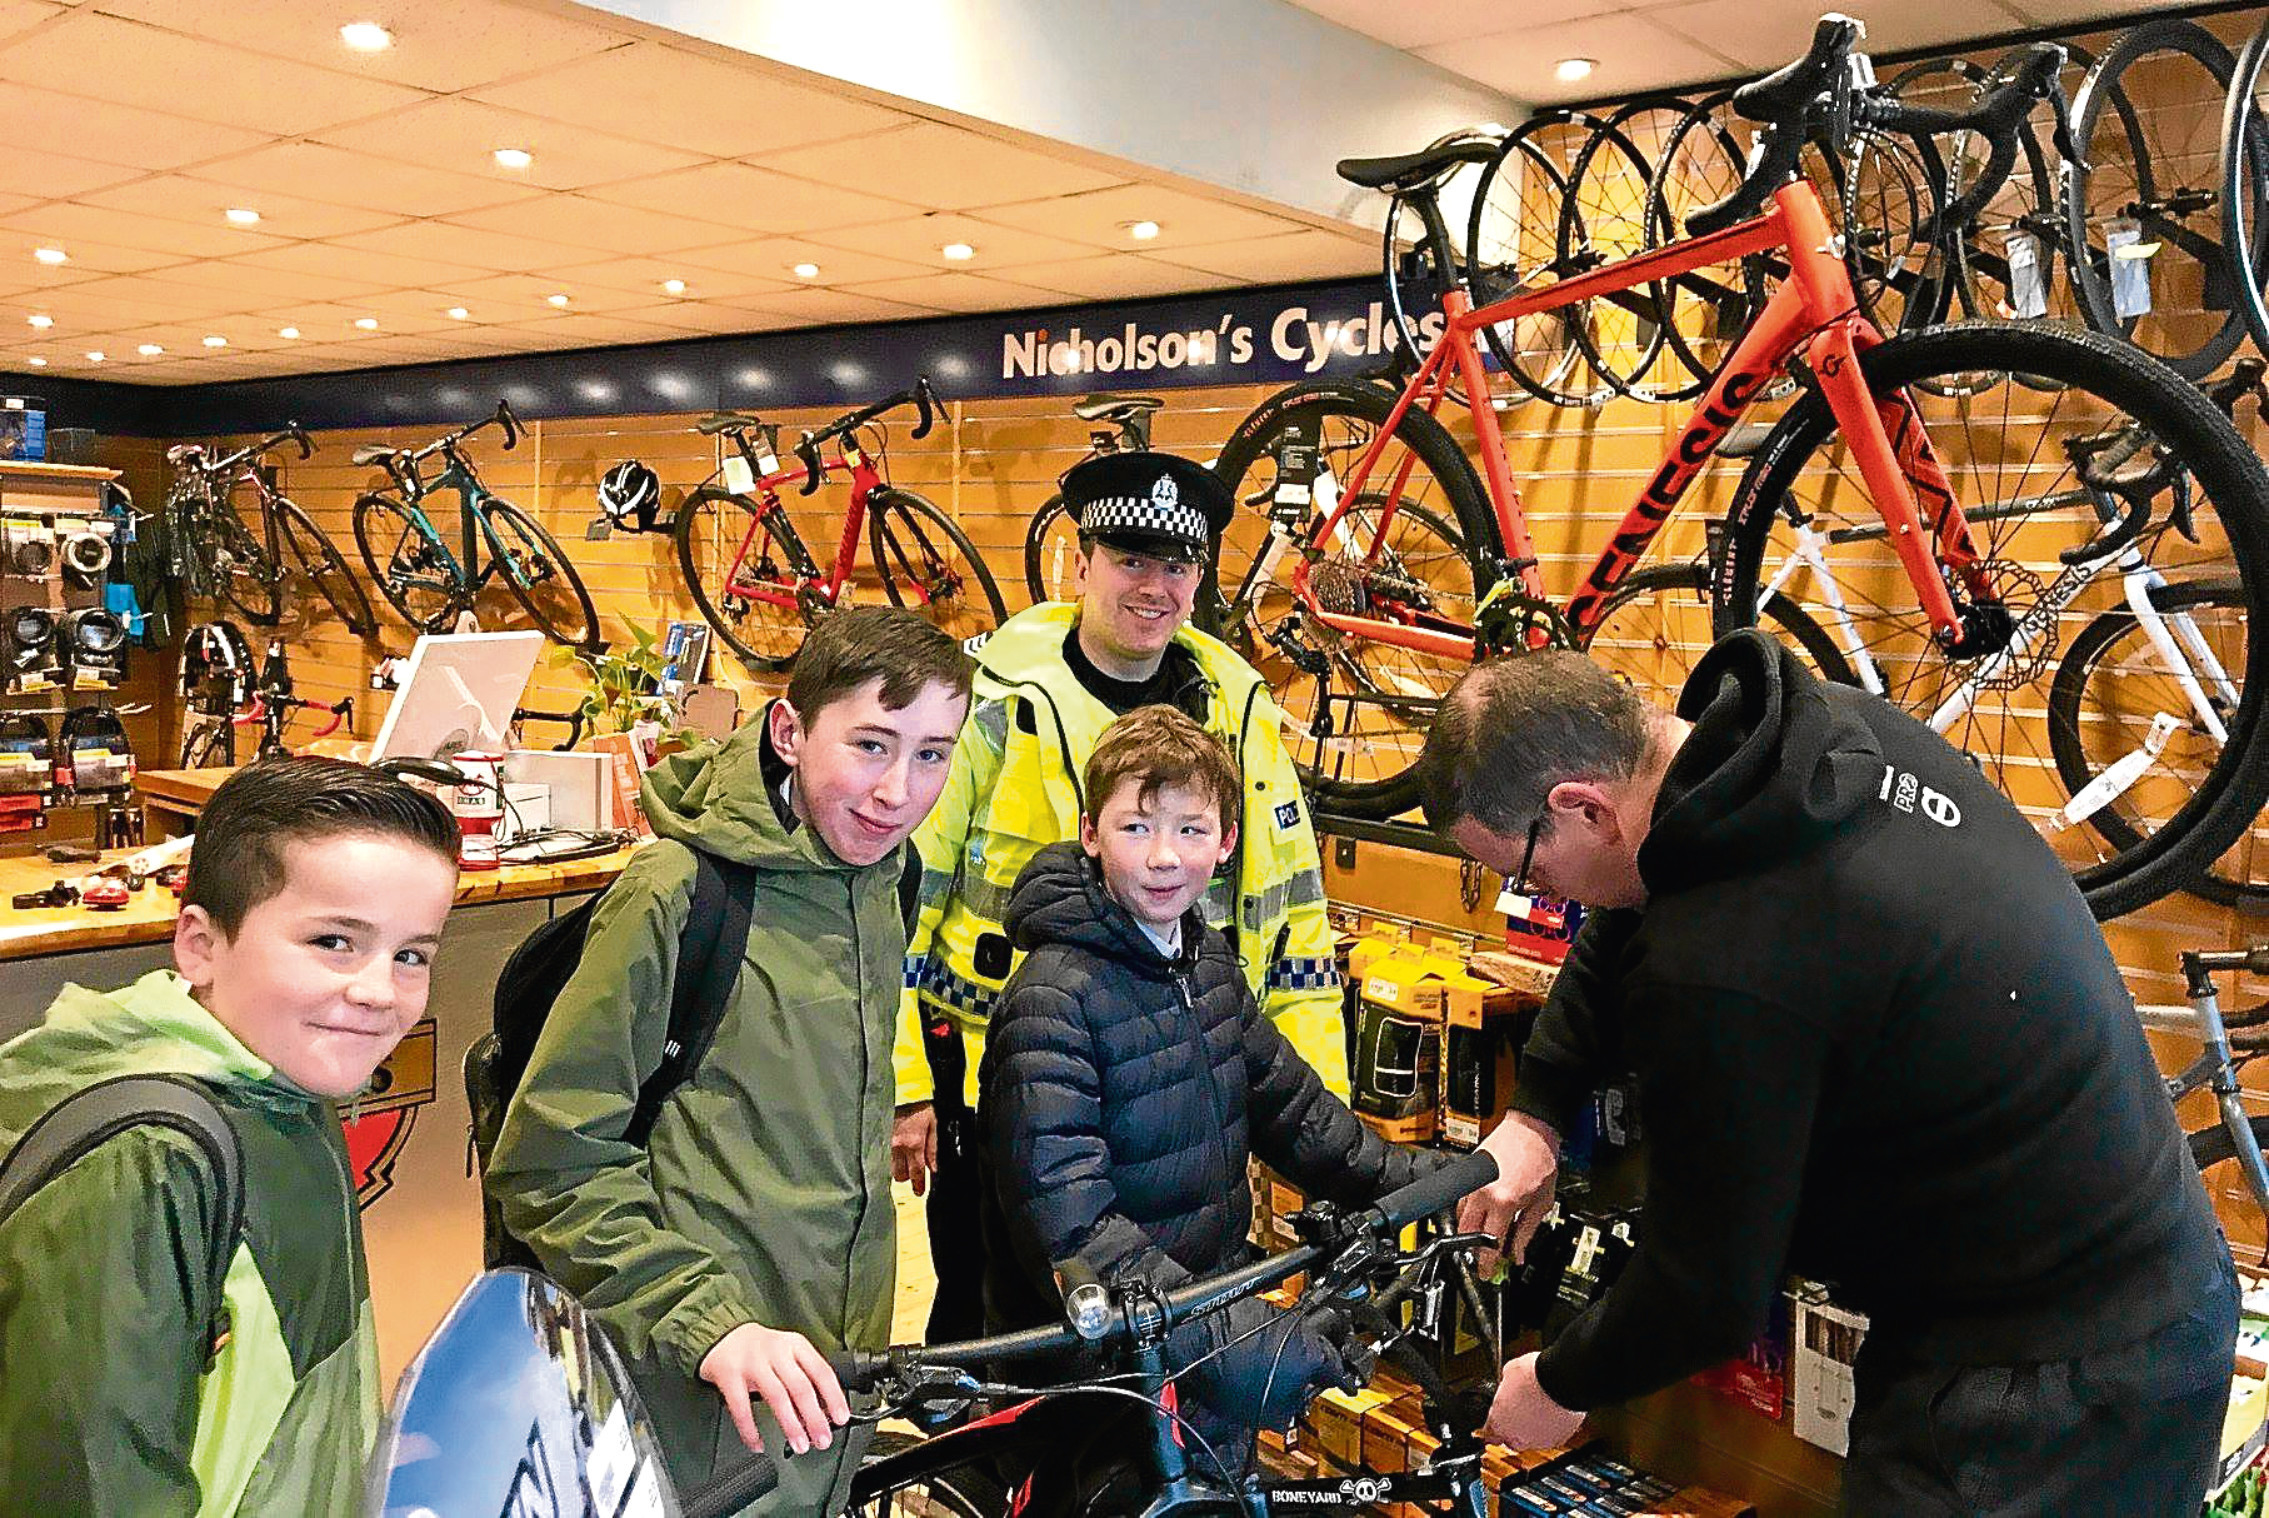 Lennon Henderson, Jack Frame and Steven Wilson received their new lights at Nicholson's store, and Maryfield Community Sergeant Alex Munro, along with DISC Target Project's Allan Howieson, were there to make sure eveything went smoothly